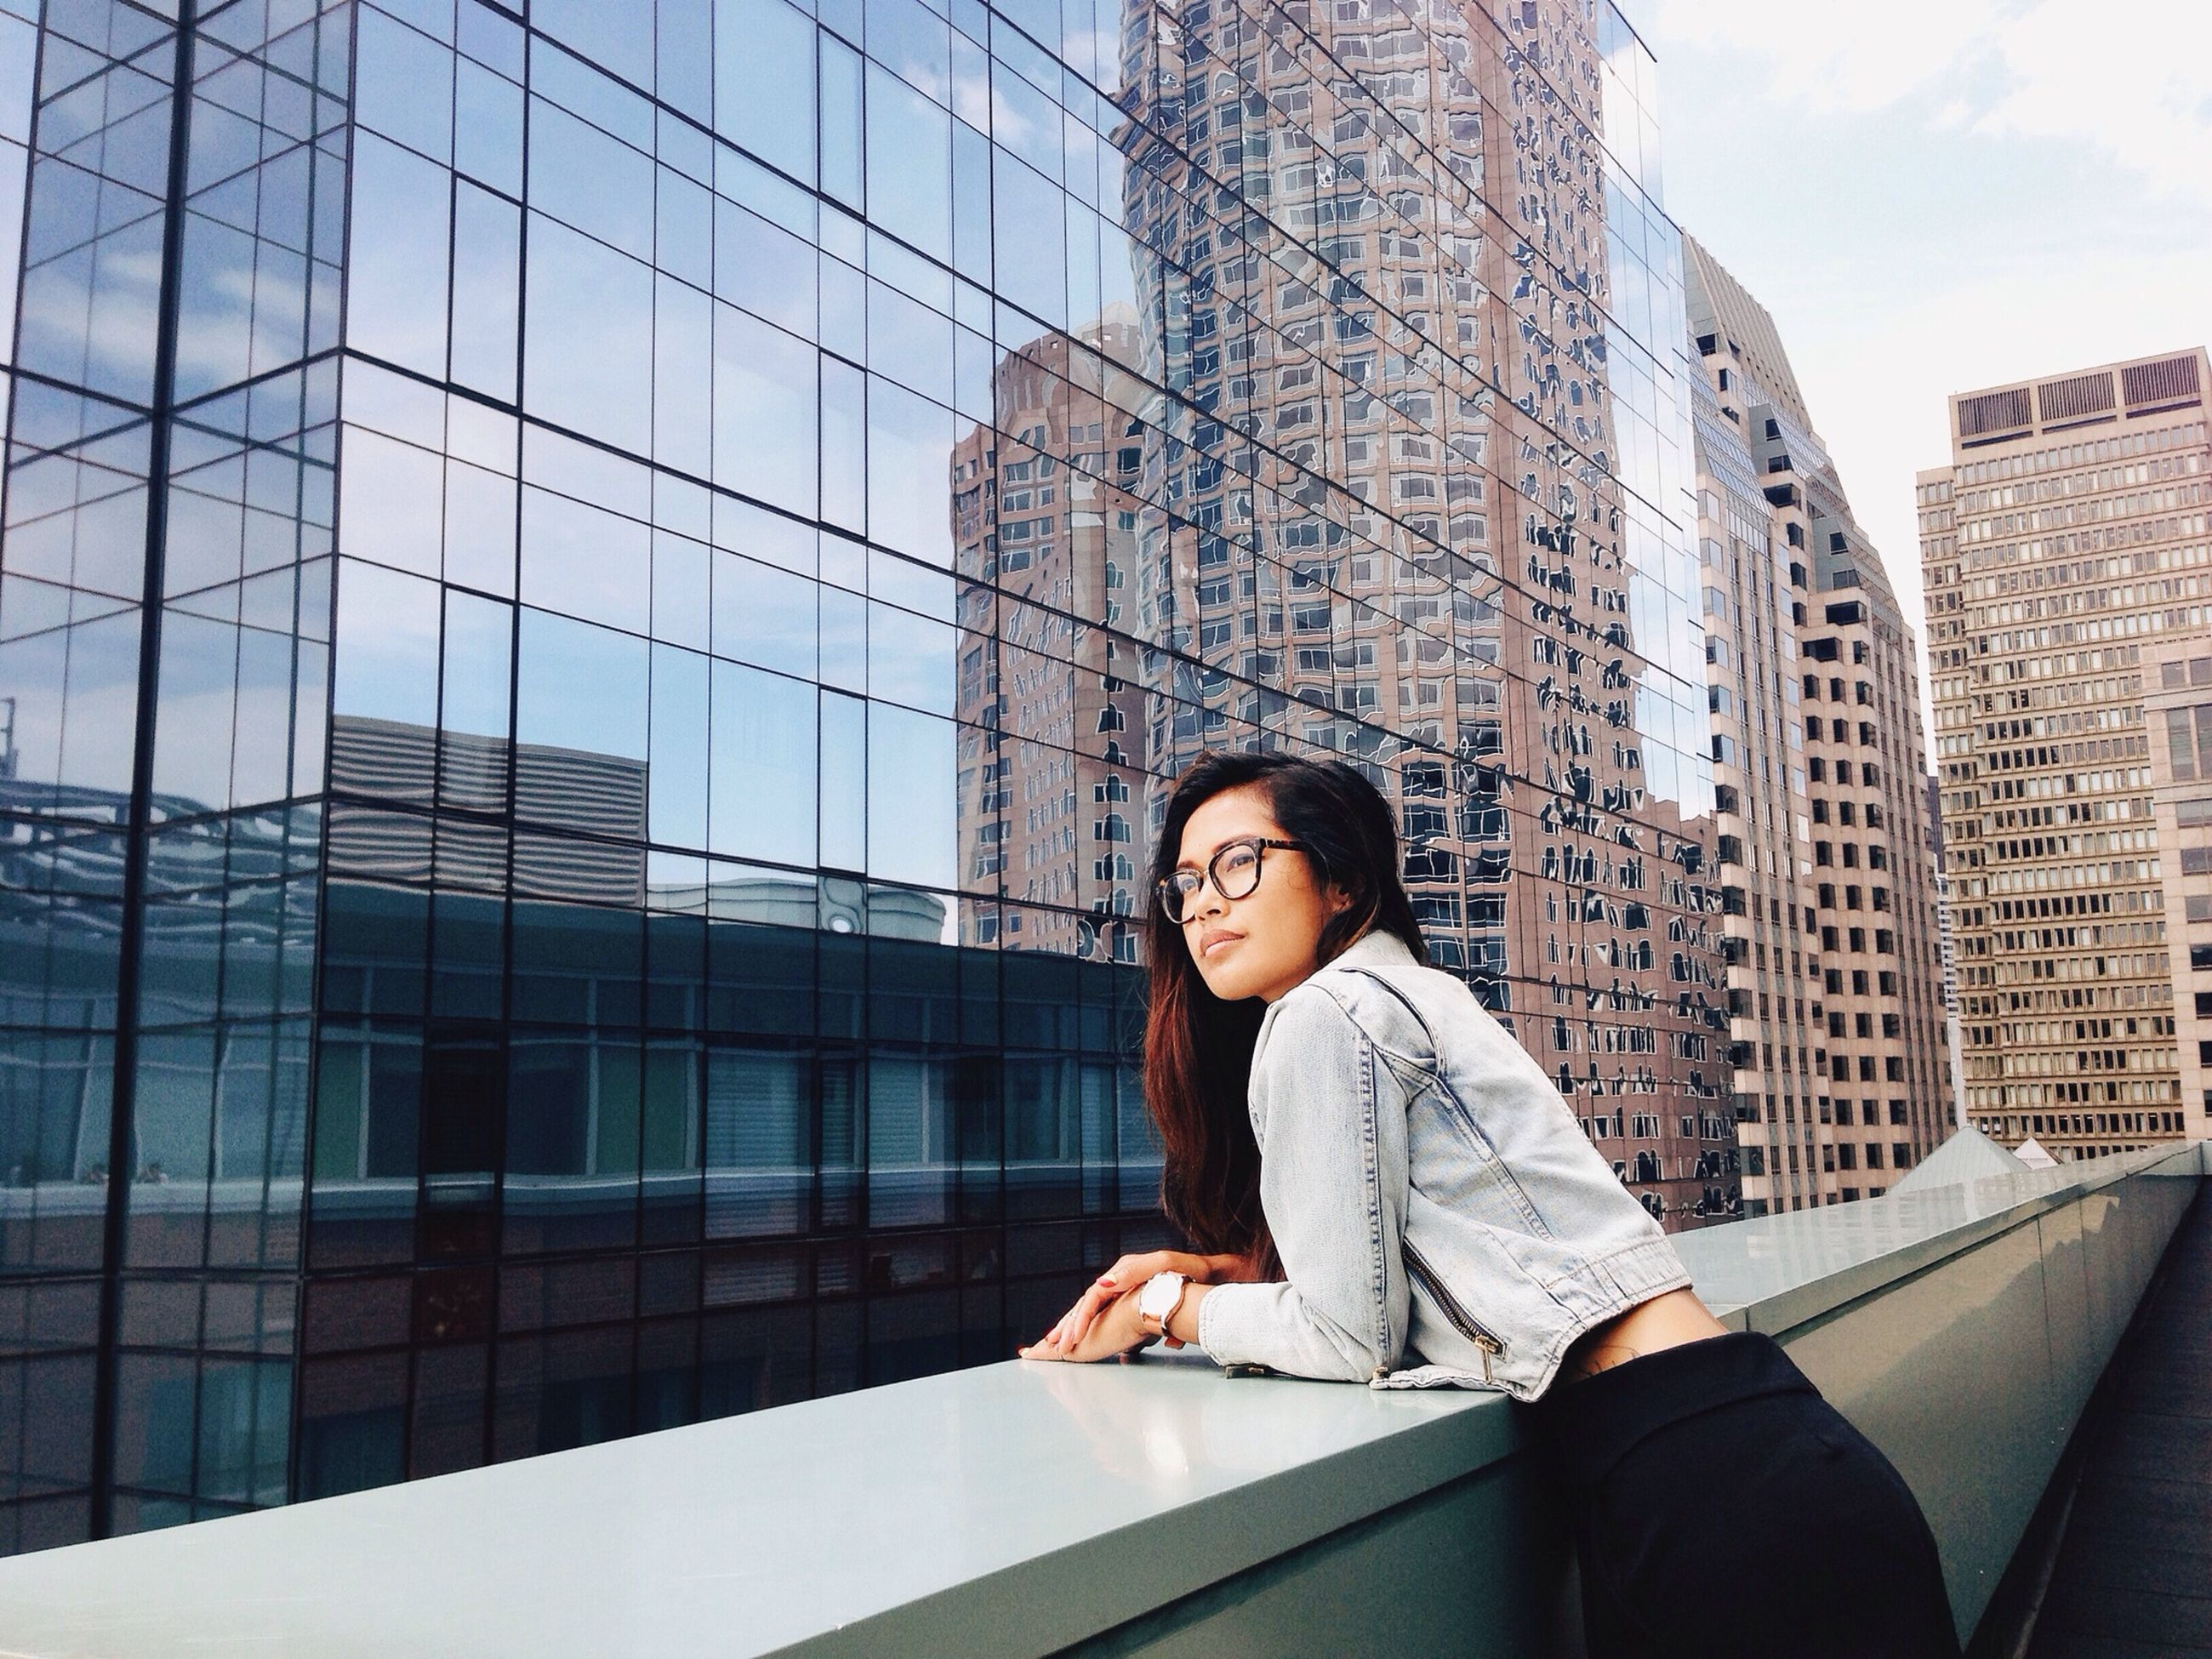 building exterior, architecture, built structure, lifestyles, person, young adult, casual clothing, window, leisure activity, sky, waist up, front view, portrait, looking at camera, day, city, low angle view, outdoors